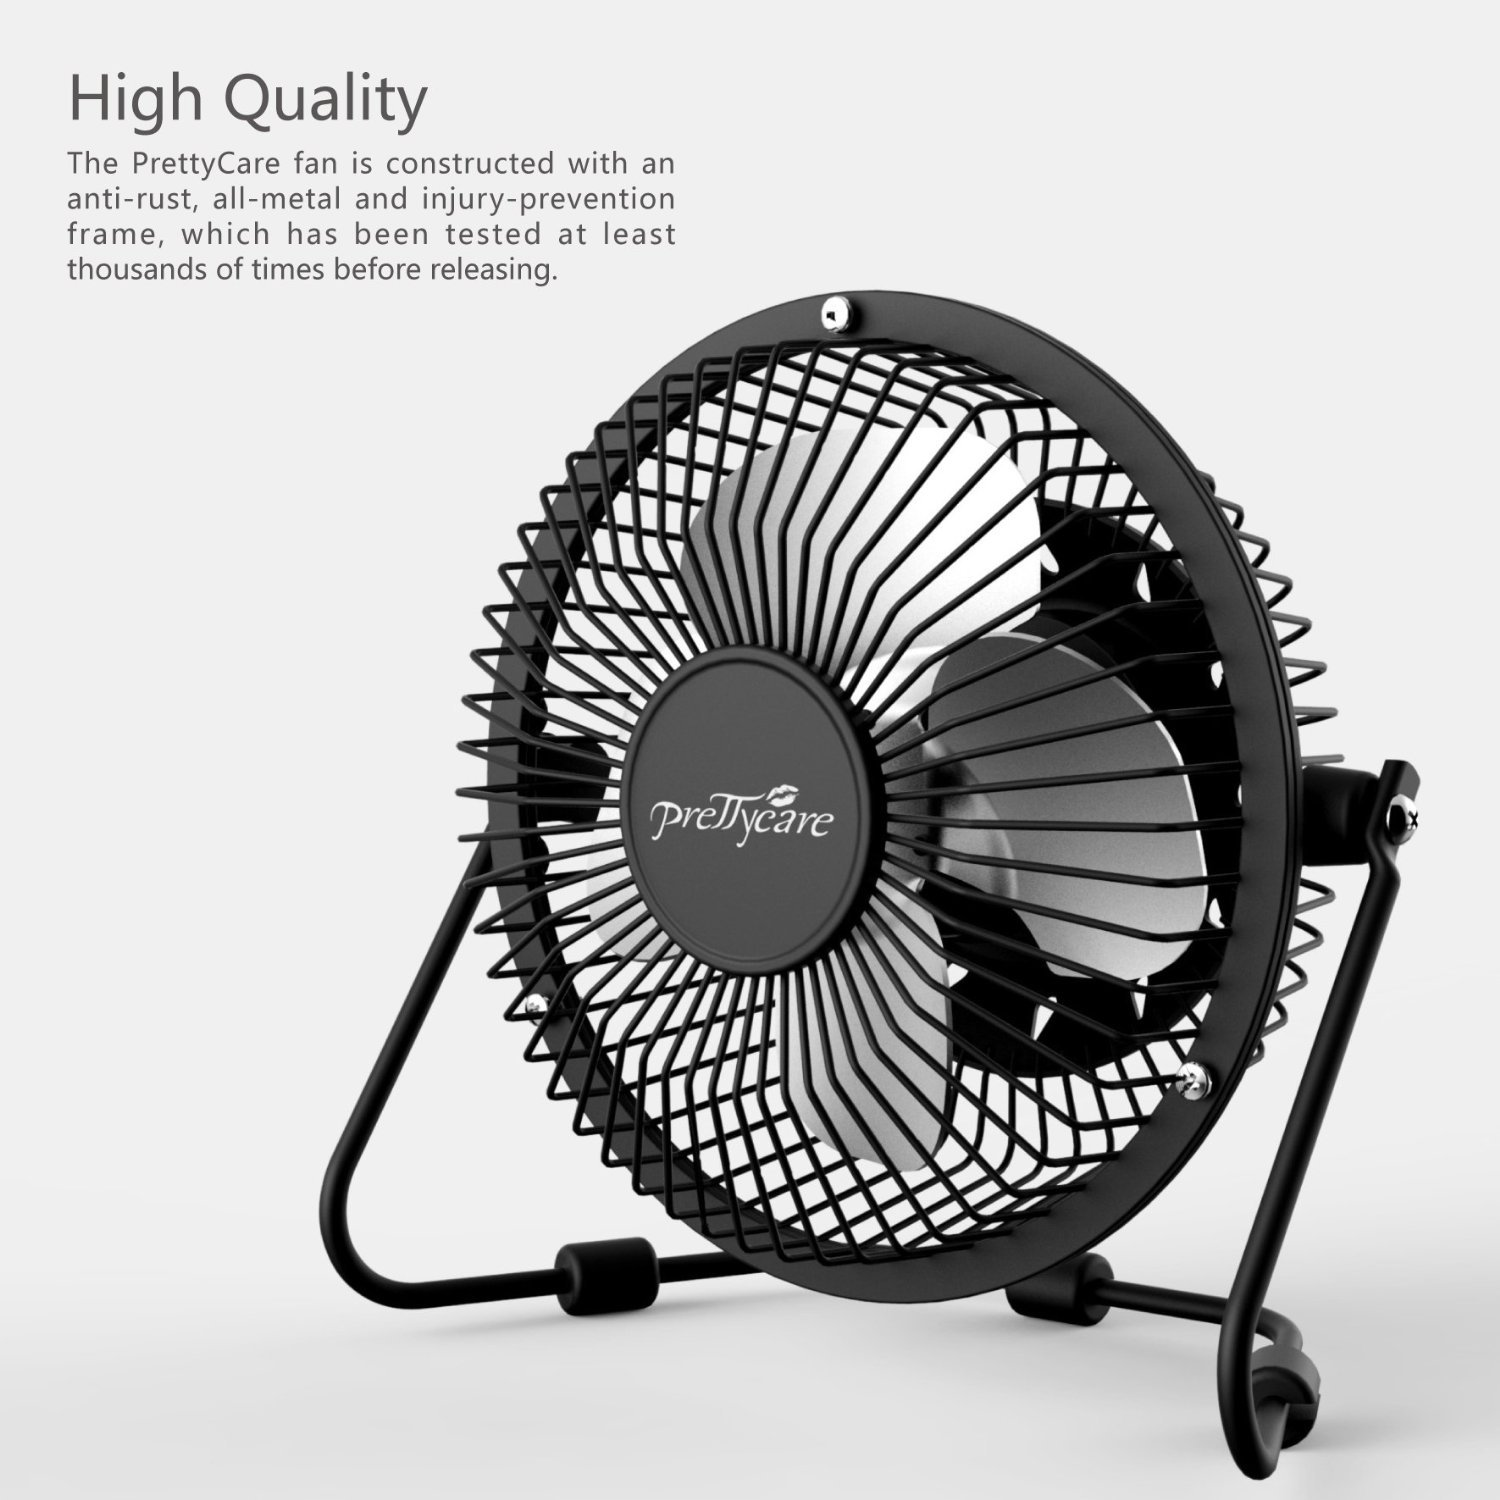 Amazon.com: PrettyCare USB Desk Fan (Powerful Airflow/ A Free Adapter)  Personal Mini Fan   Small Table Fan With Pedestal/ Air Radiator For Laptop,  ...